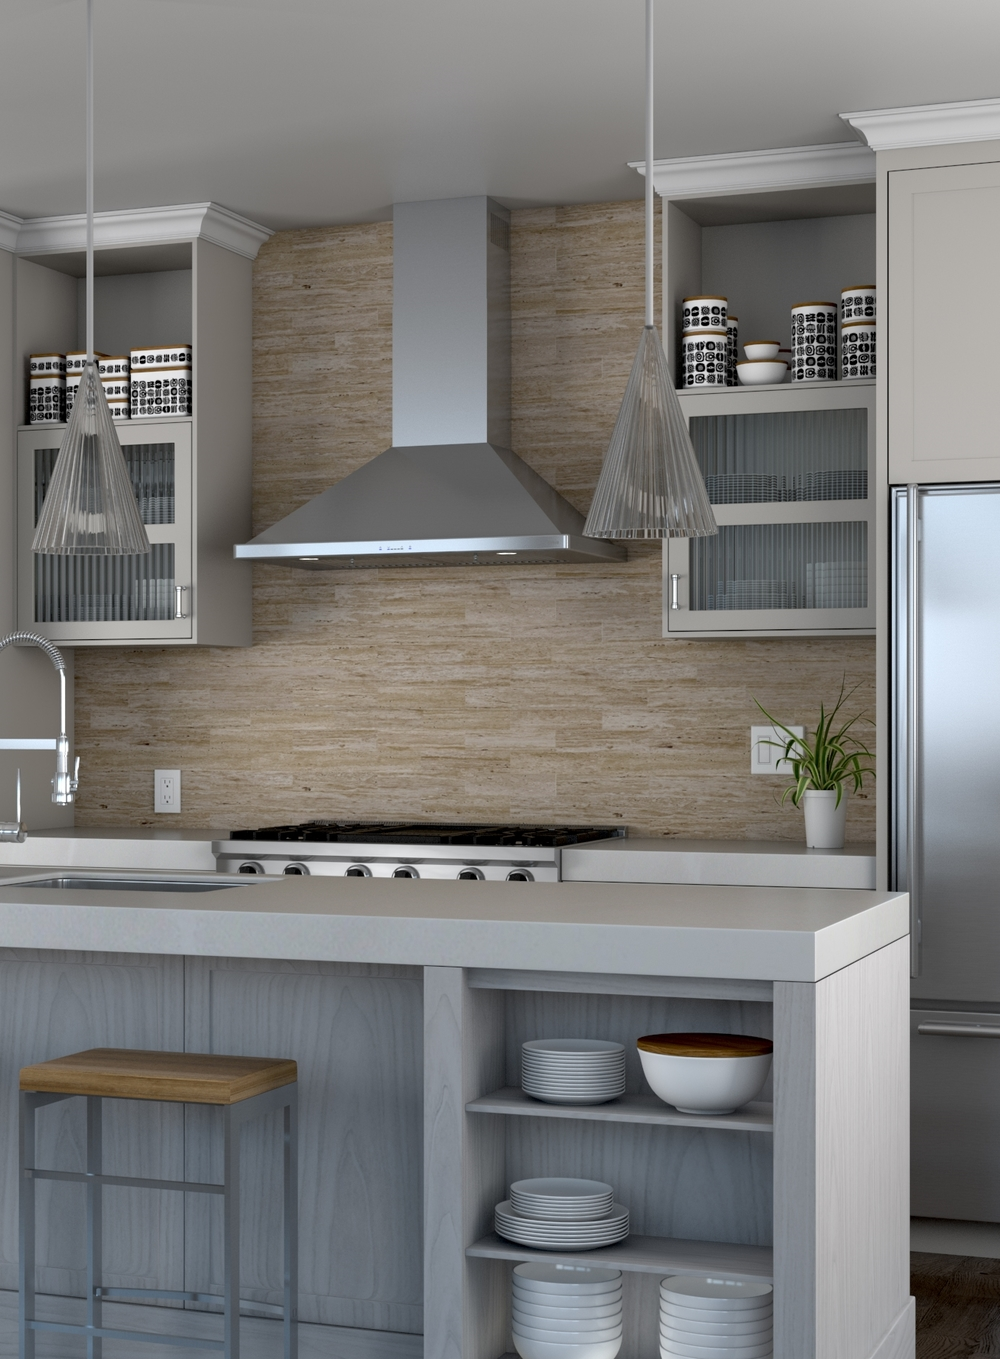 Siena-ENERGY-STAR®-Kitchen.jpg